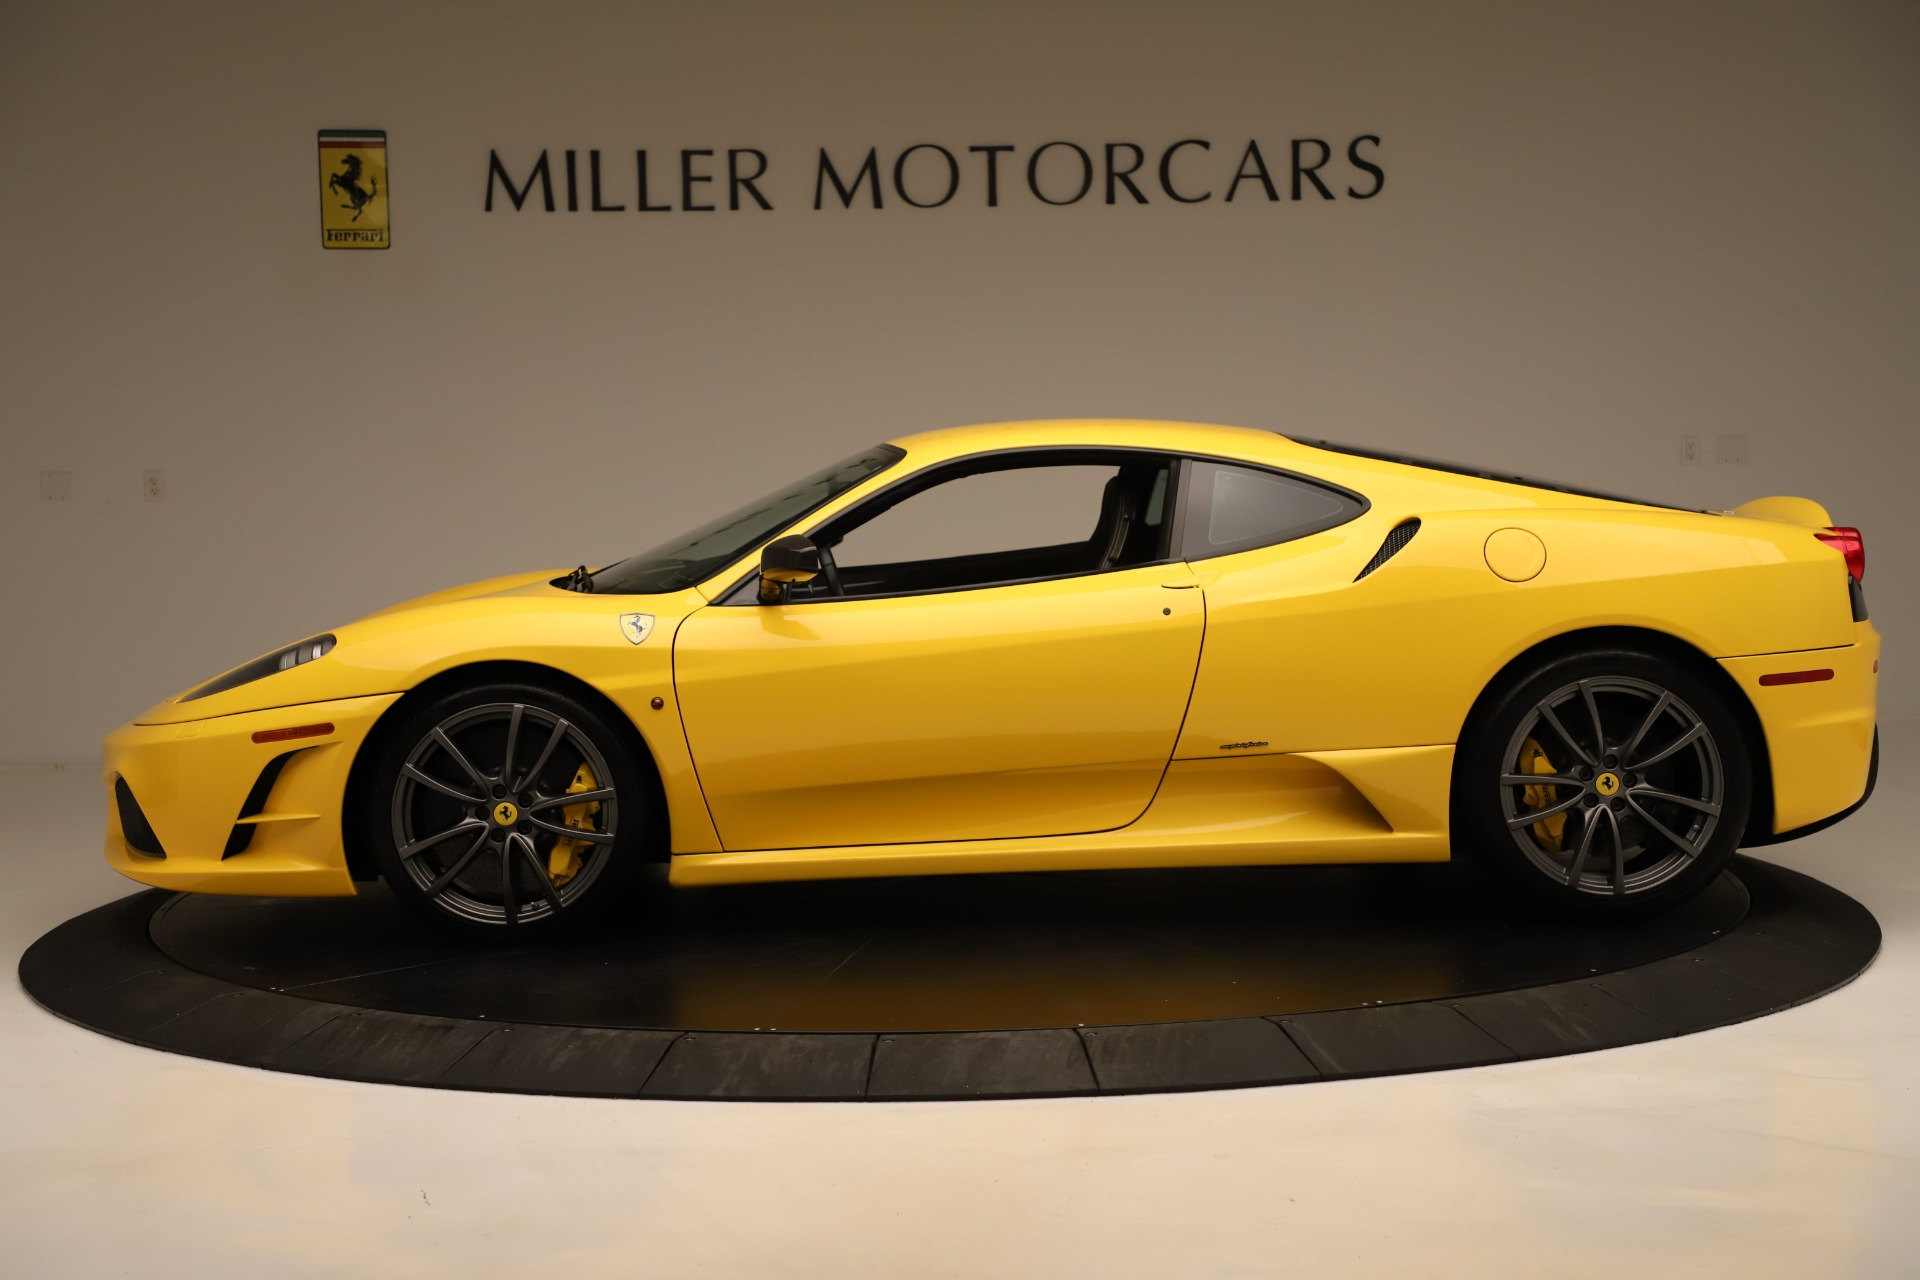 Used 2008 Ferrari F430 Scuderia For Sale In Greenwich, CT 3319_p3